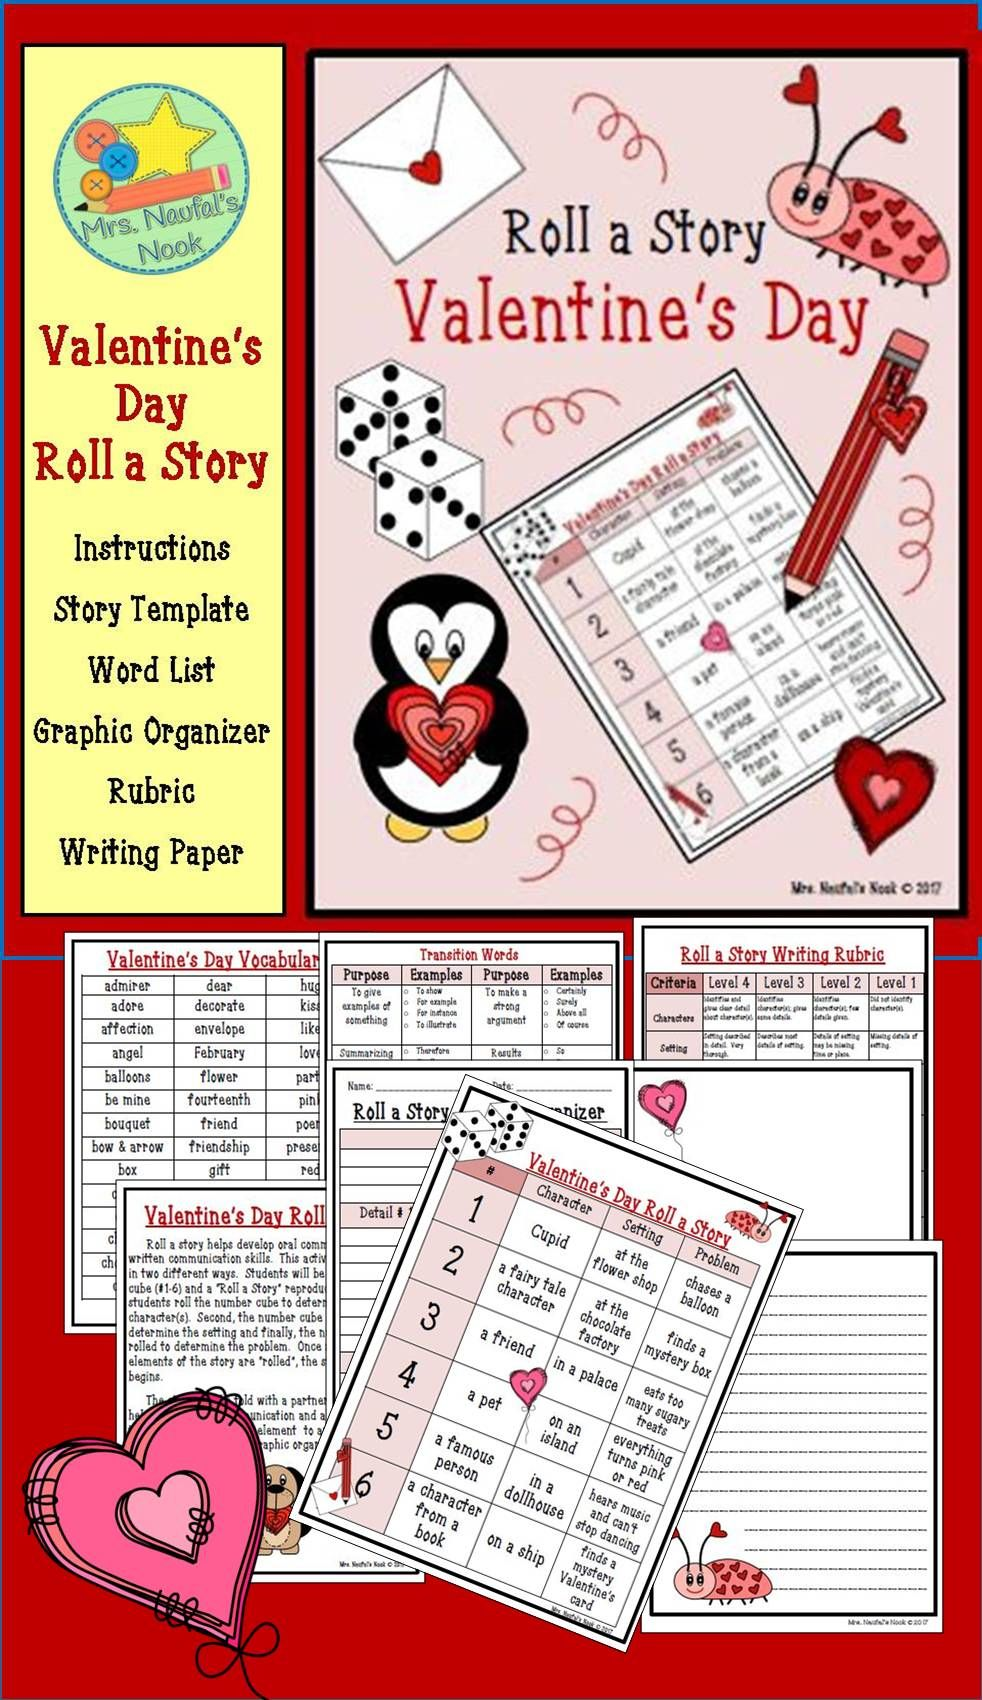 Valentine's Day Roll a Story - Story Prompts, Graphic Organizers